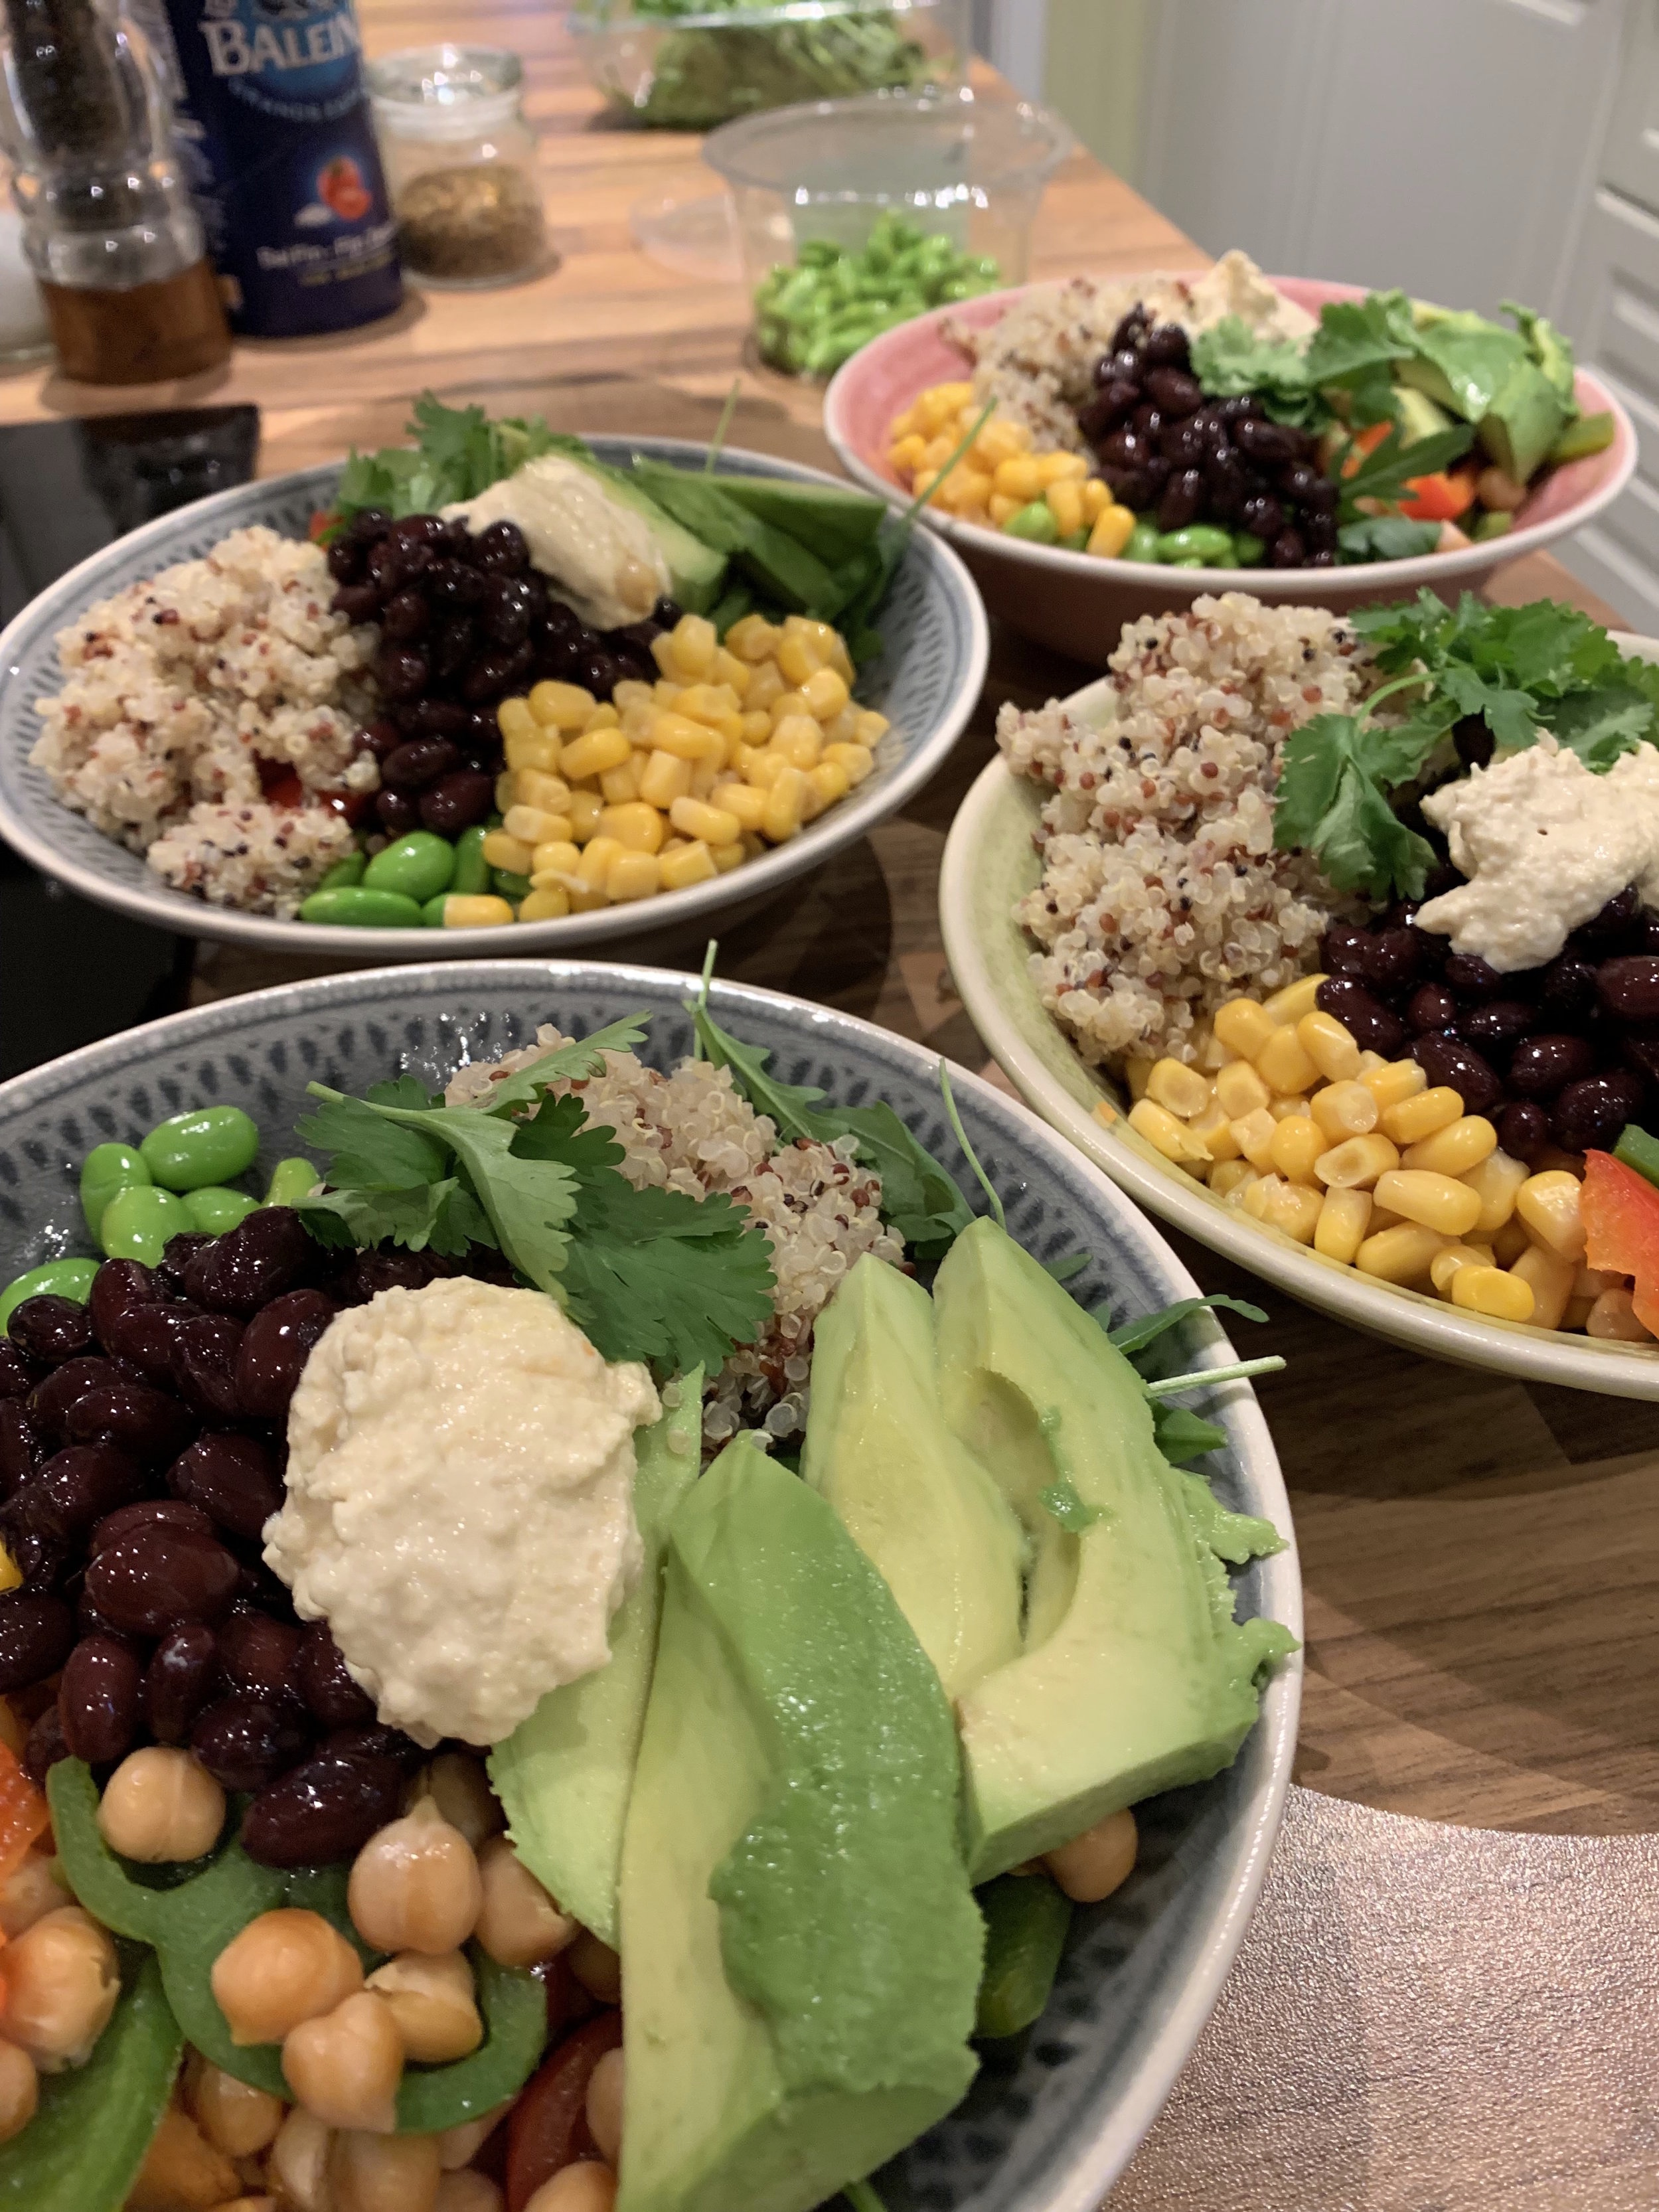 QUINOA BUDDHA BOWL - BASICALLY YOU THROW IN WHATEVER YOU CAN FIND